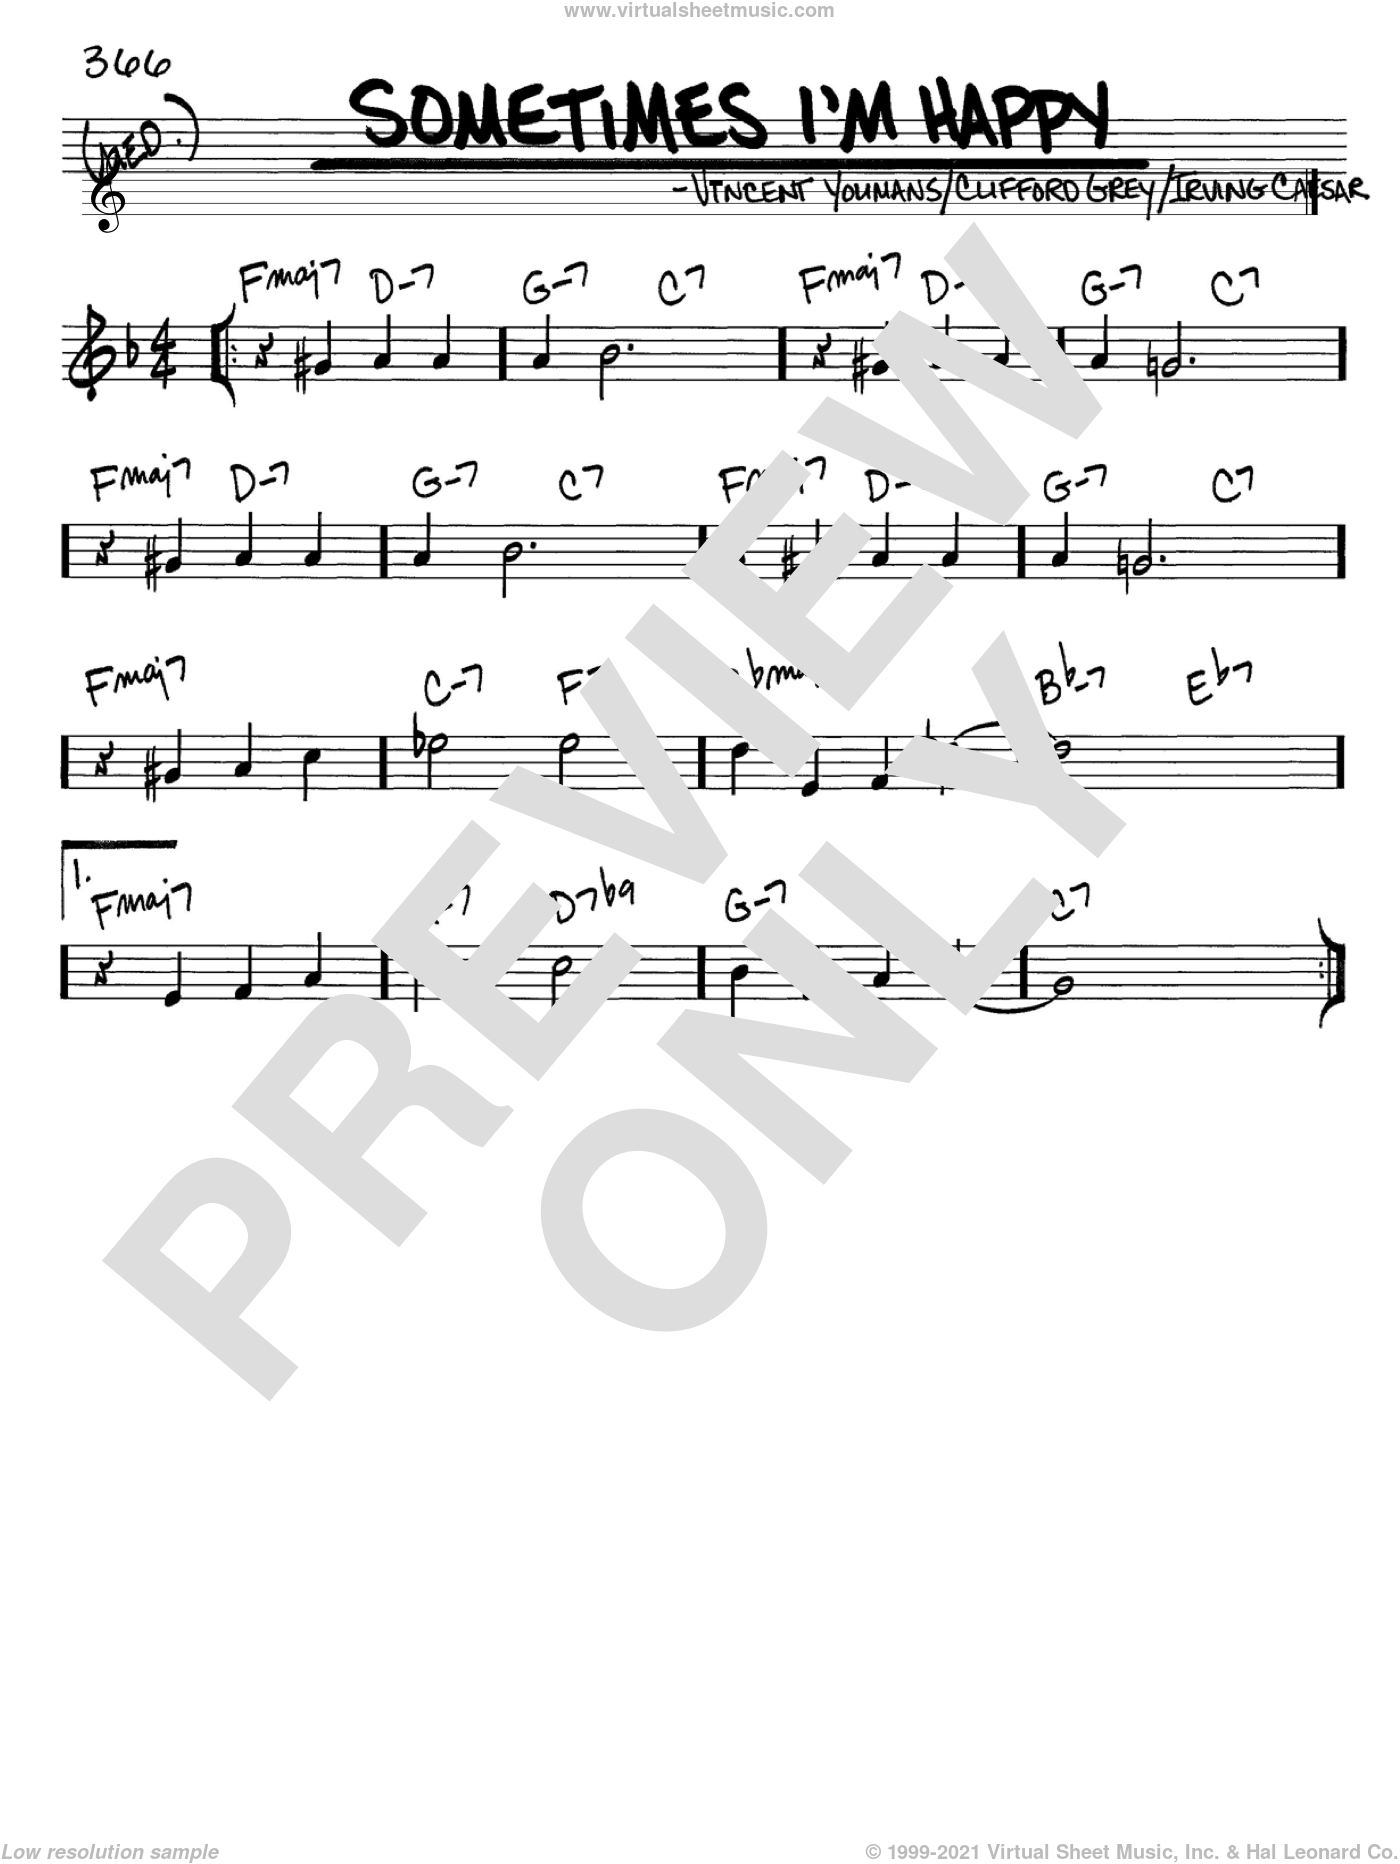 Sometimes I'm Happy sheet music for voice and other instruments (C) by Vincent Youmans, Clifford Grey and Irving Caesar. Score Image Preview.